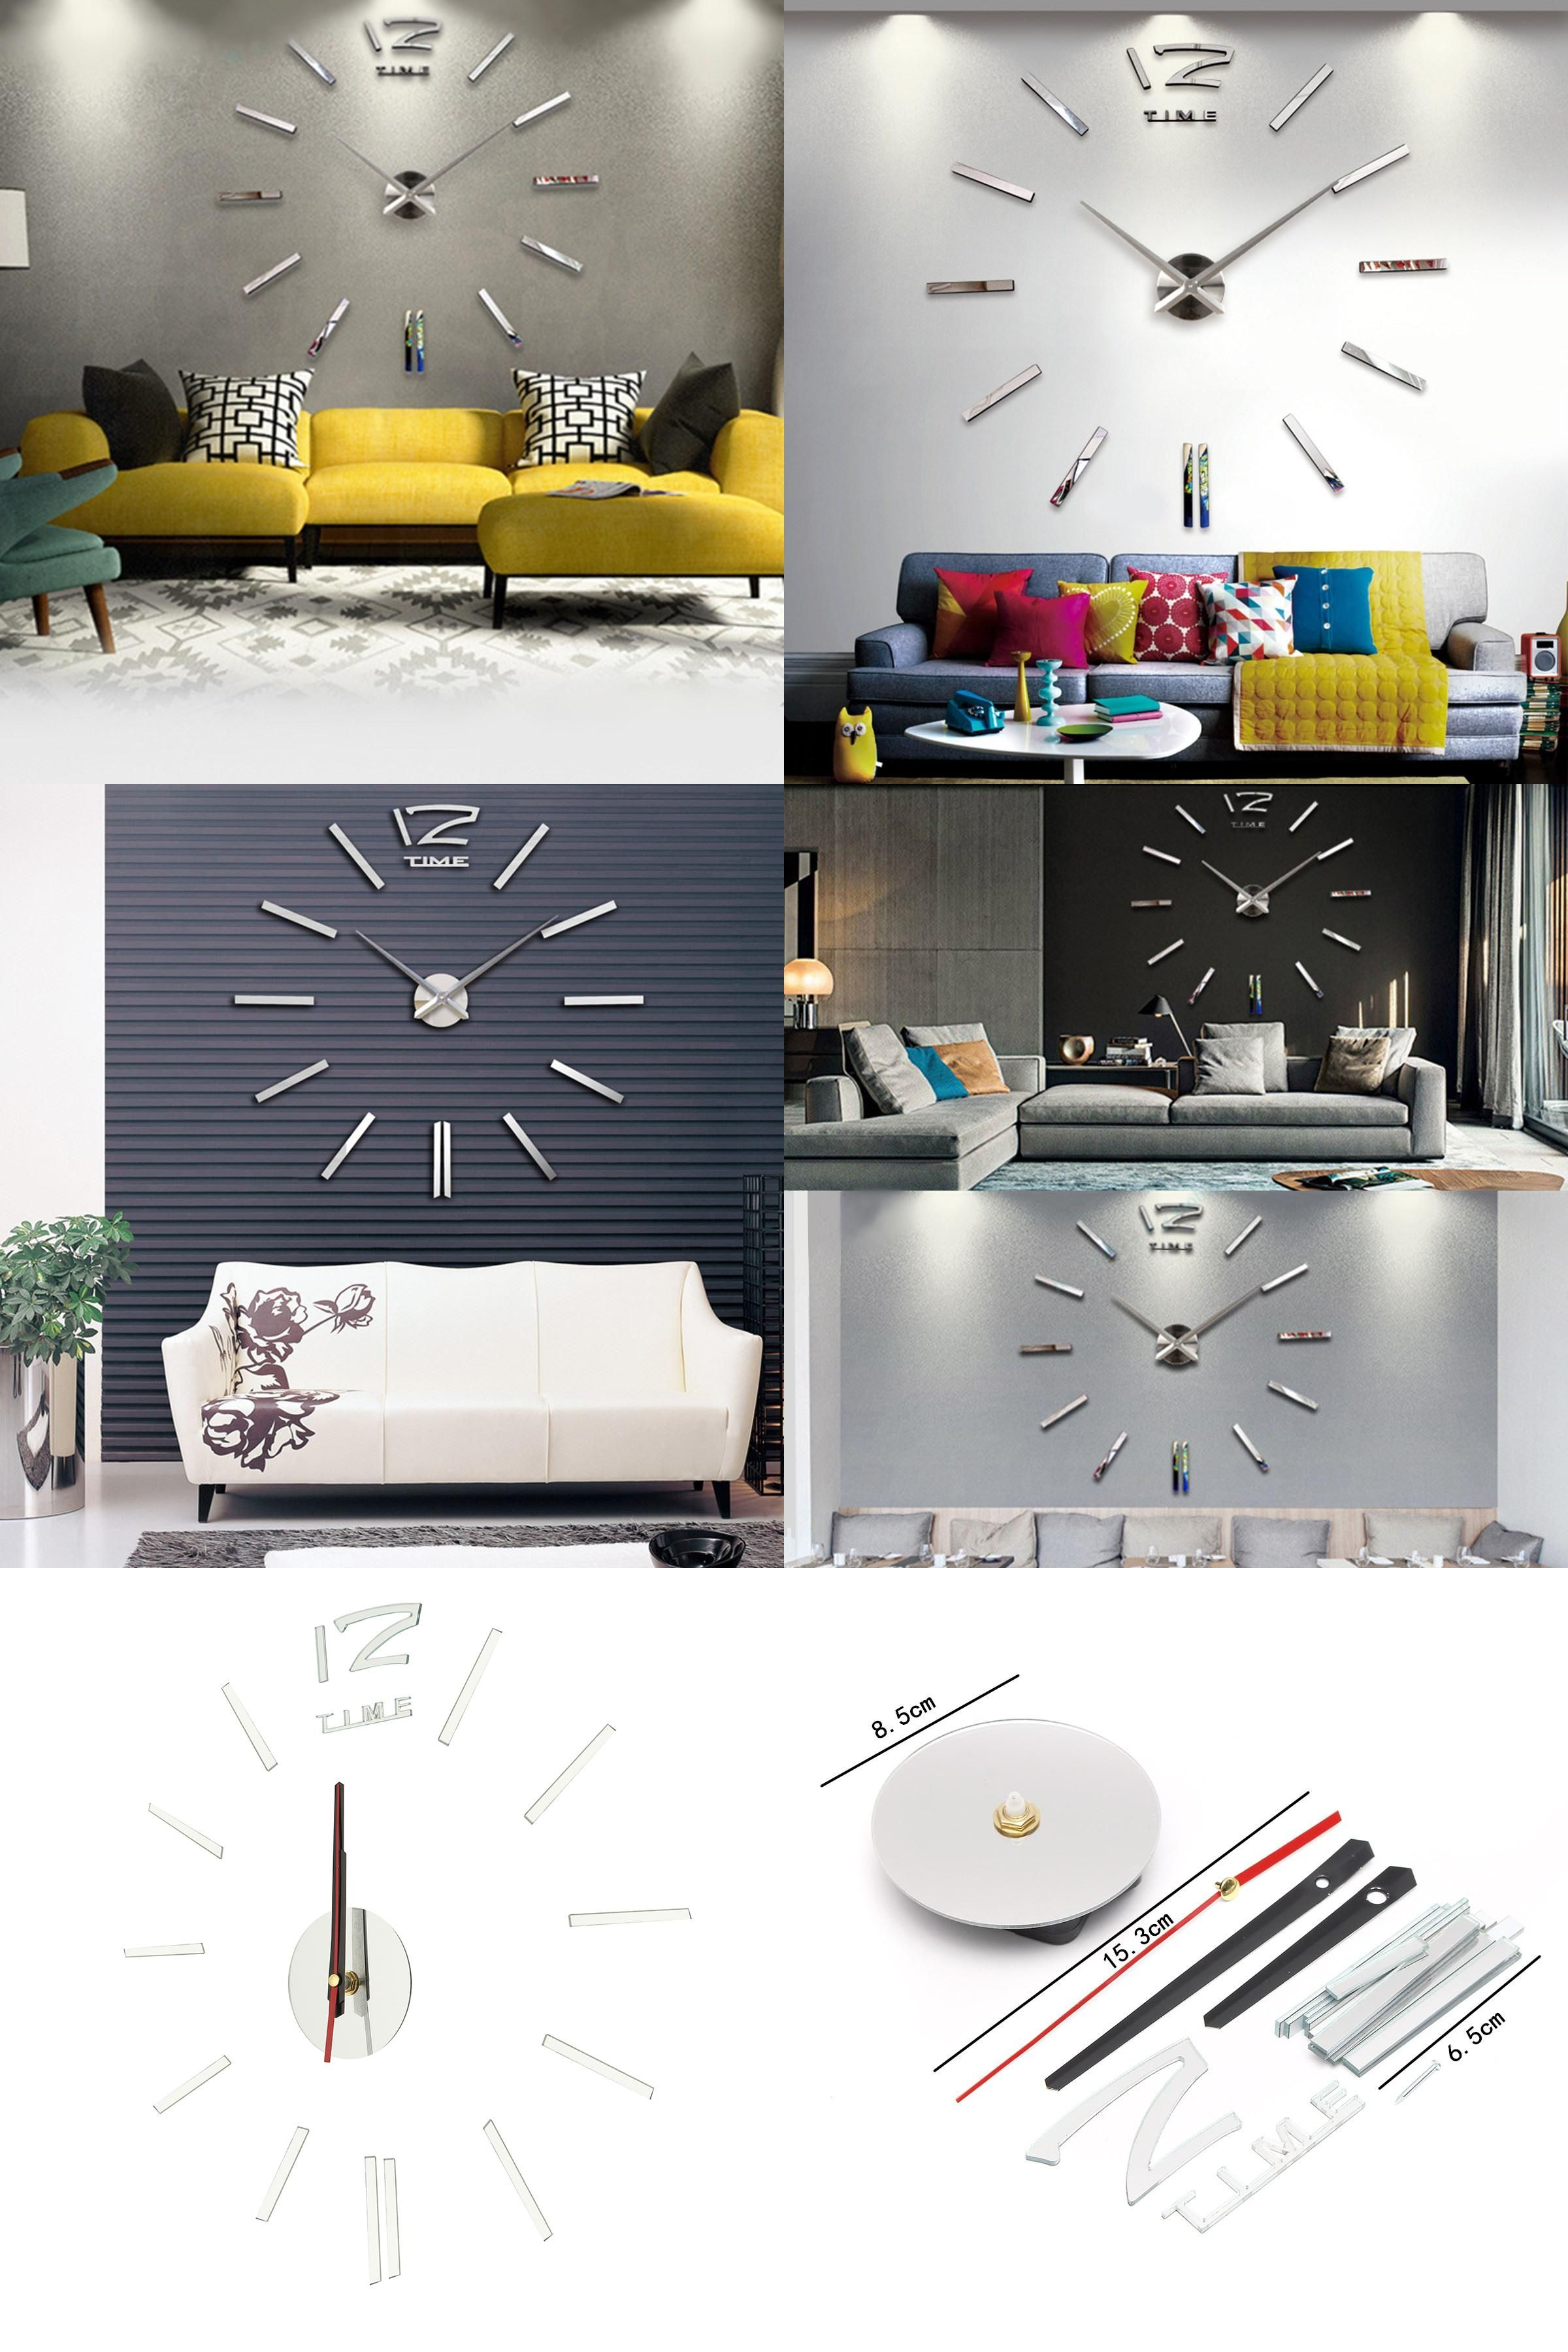 [Visit To Buy] Acrylic 3D Diy Mirror Surface Wall Sticker